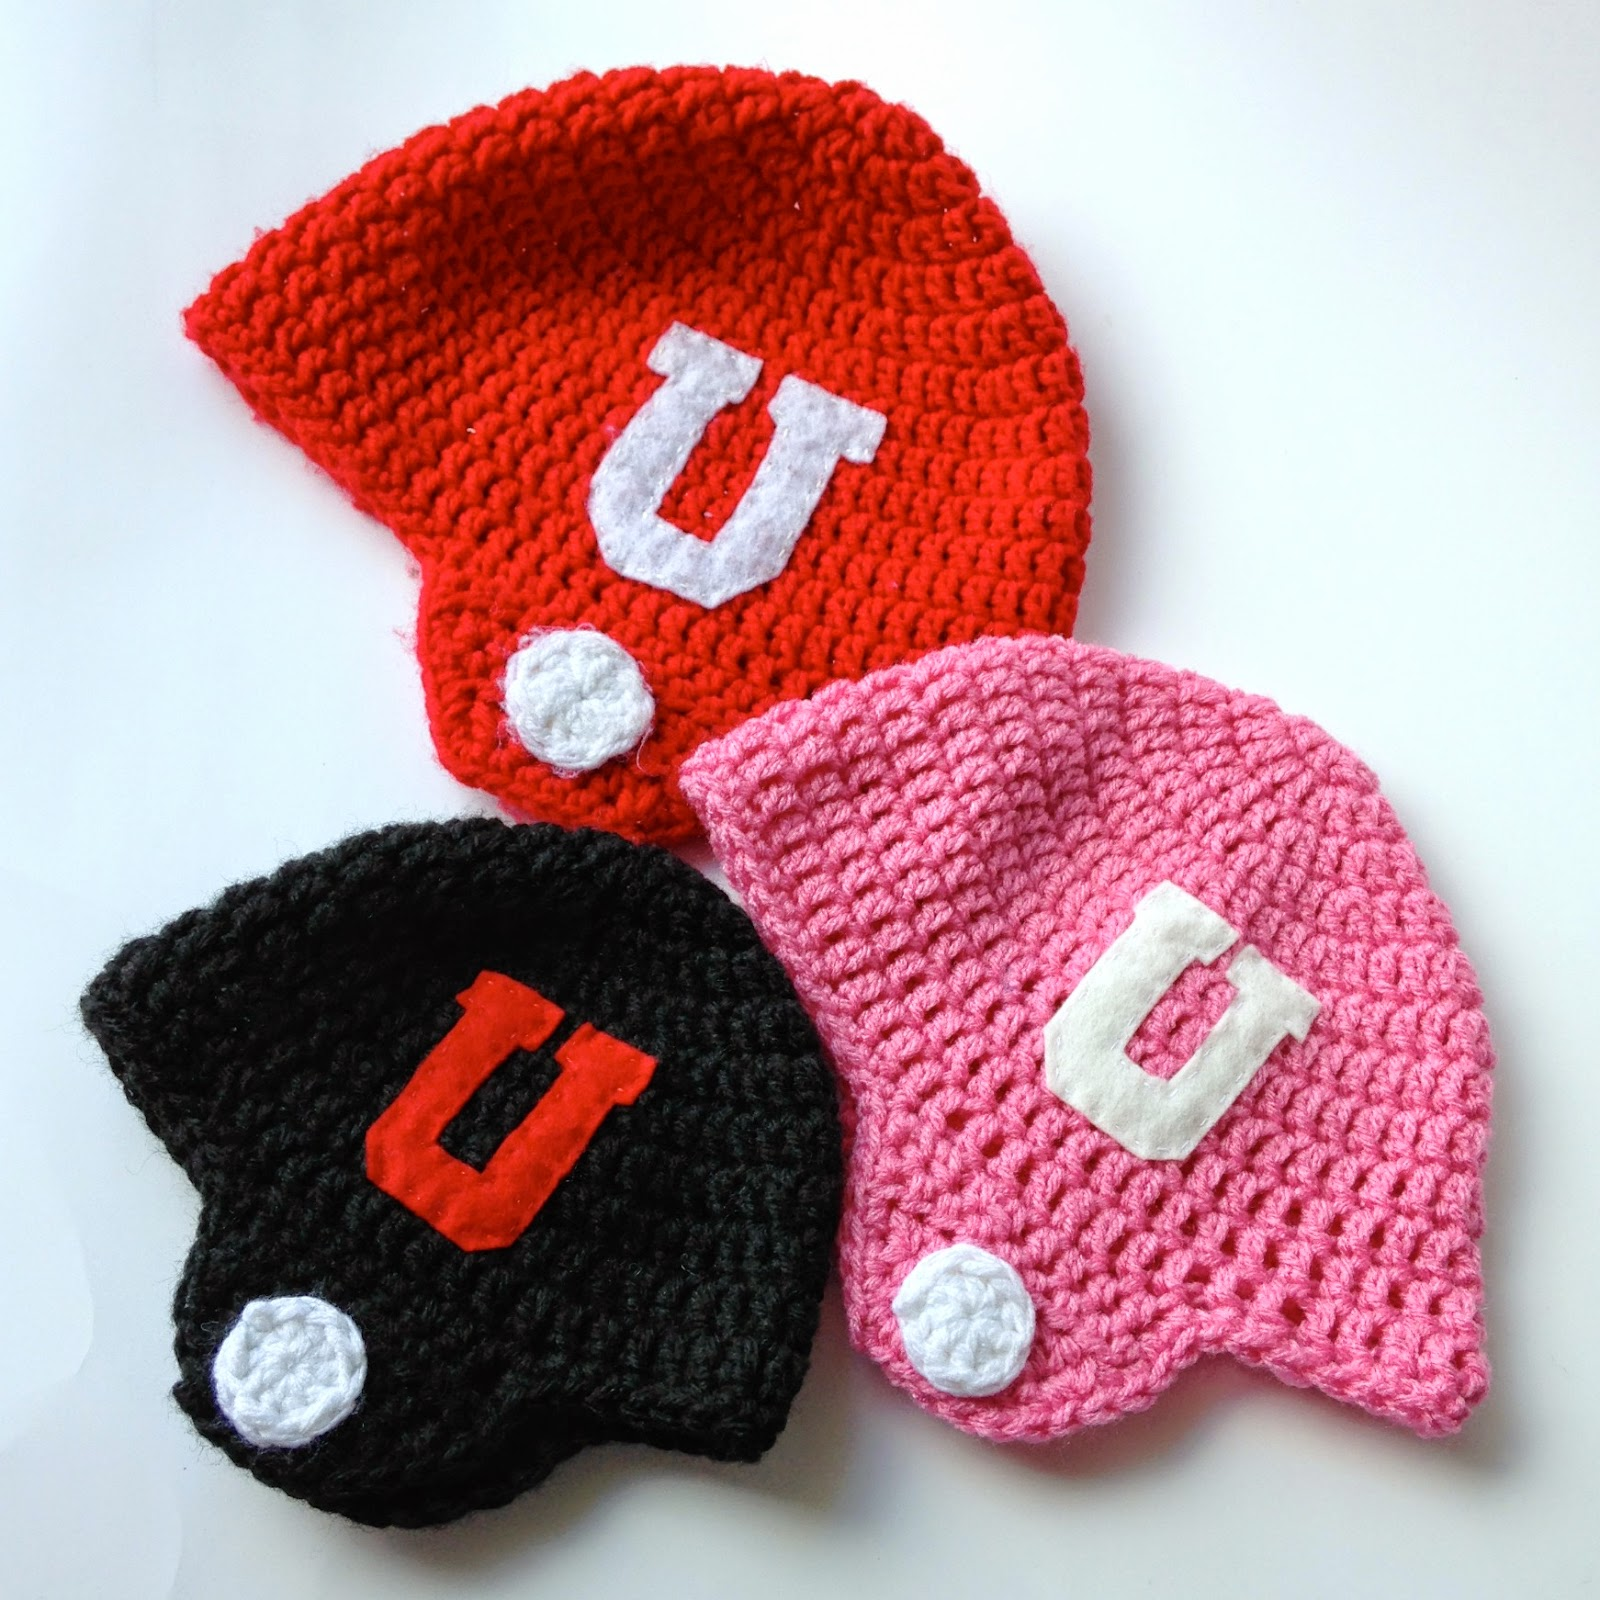 7574ab39c 5 Little Monsters: Crocheted Football Helmet Hats- Free Pattern